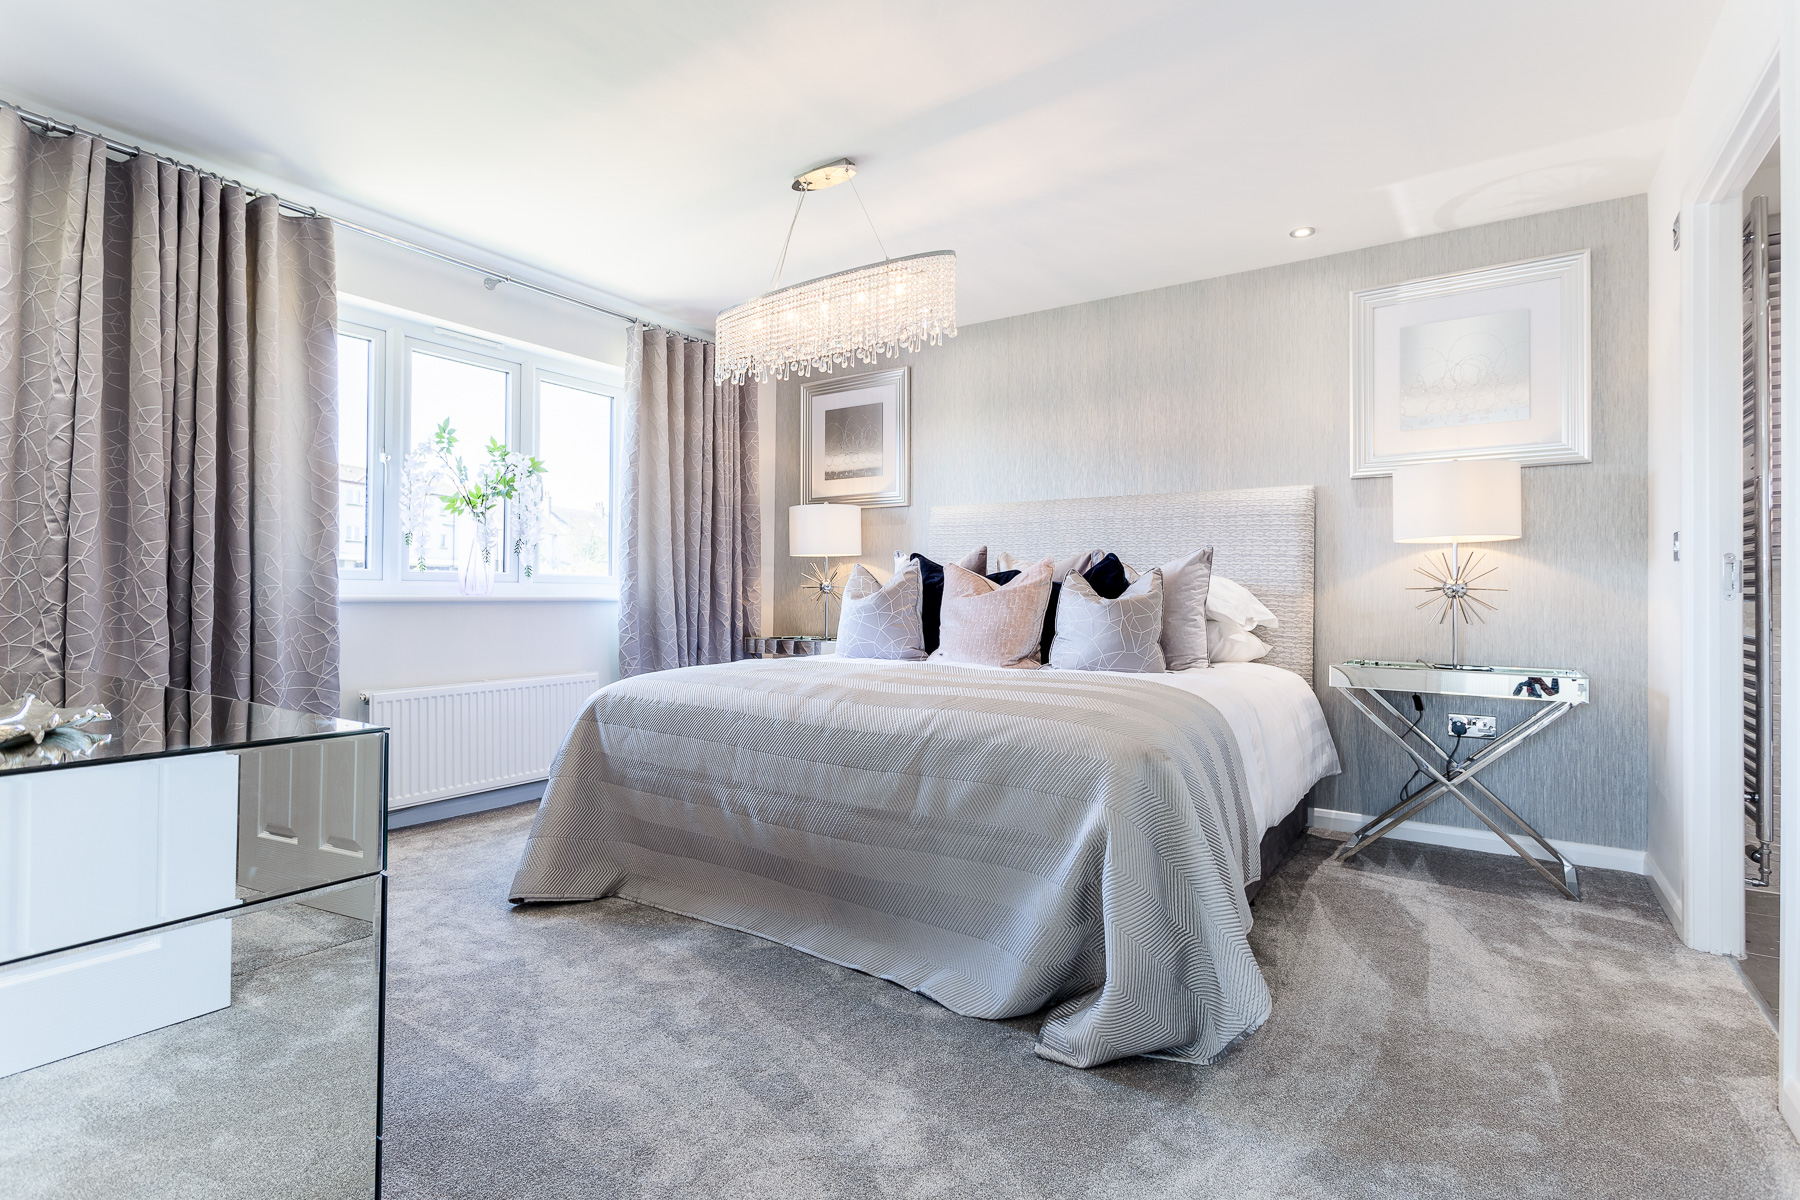 TWES_KinlochGreen_TheStewart_MasterBEdroom1_1800x1200